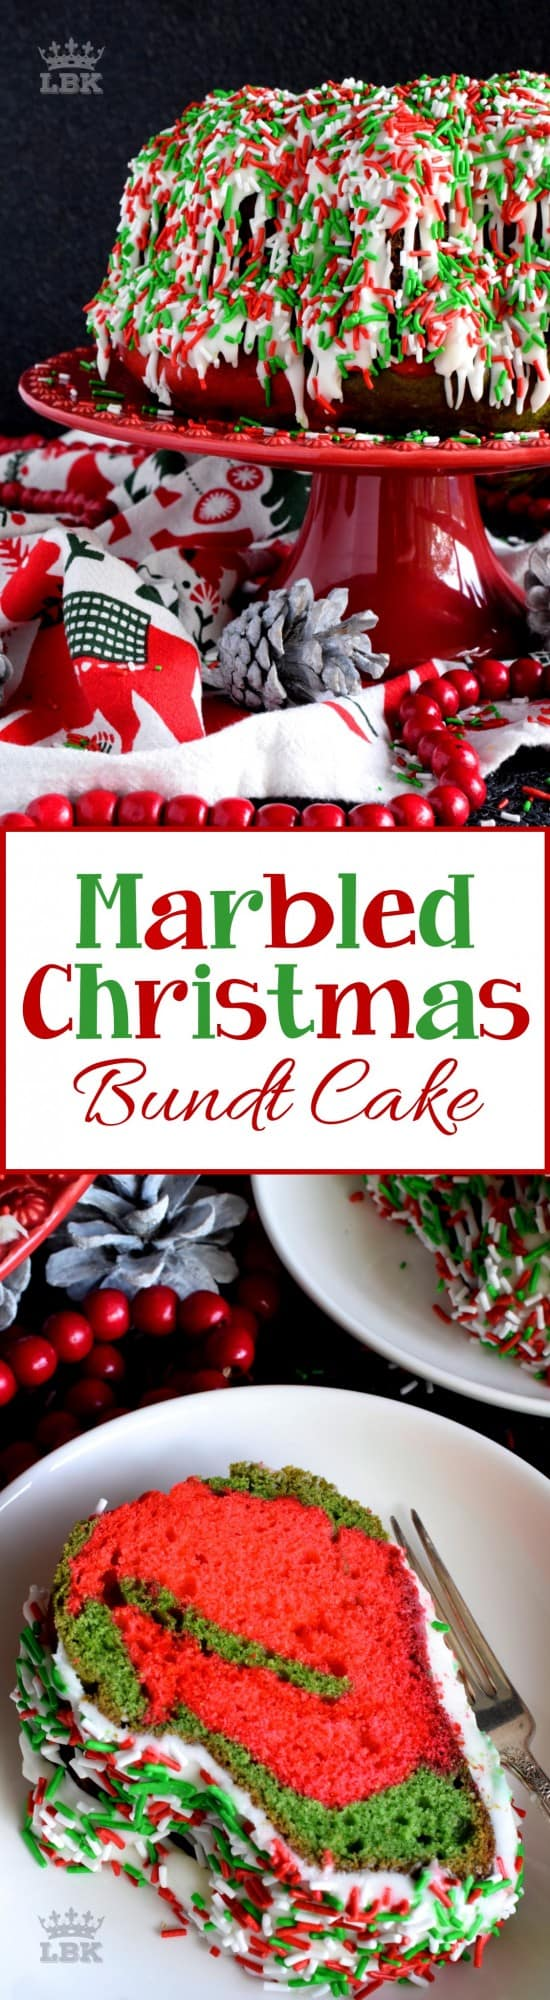 Marbled Christmas Bundt Cake - Kids of all ages will love a big slice of this Marbled Christmas Bundt Cake. This cake is festive, colourful, merry, and bright! #marble #christmas #cake #bundt #bundtbakers #holiday #red #green #sprinkles